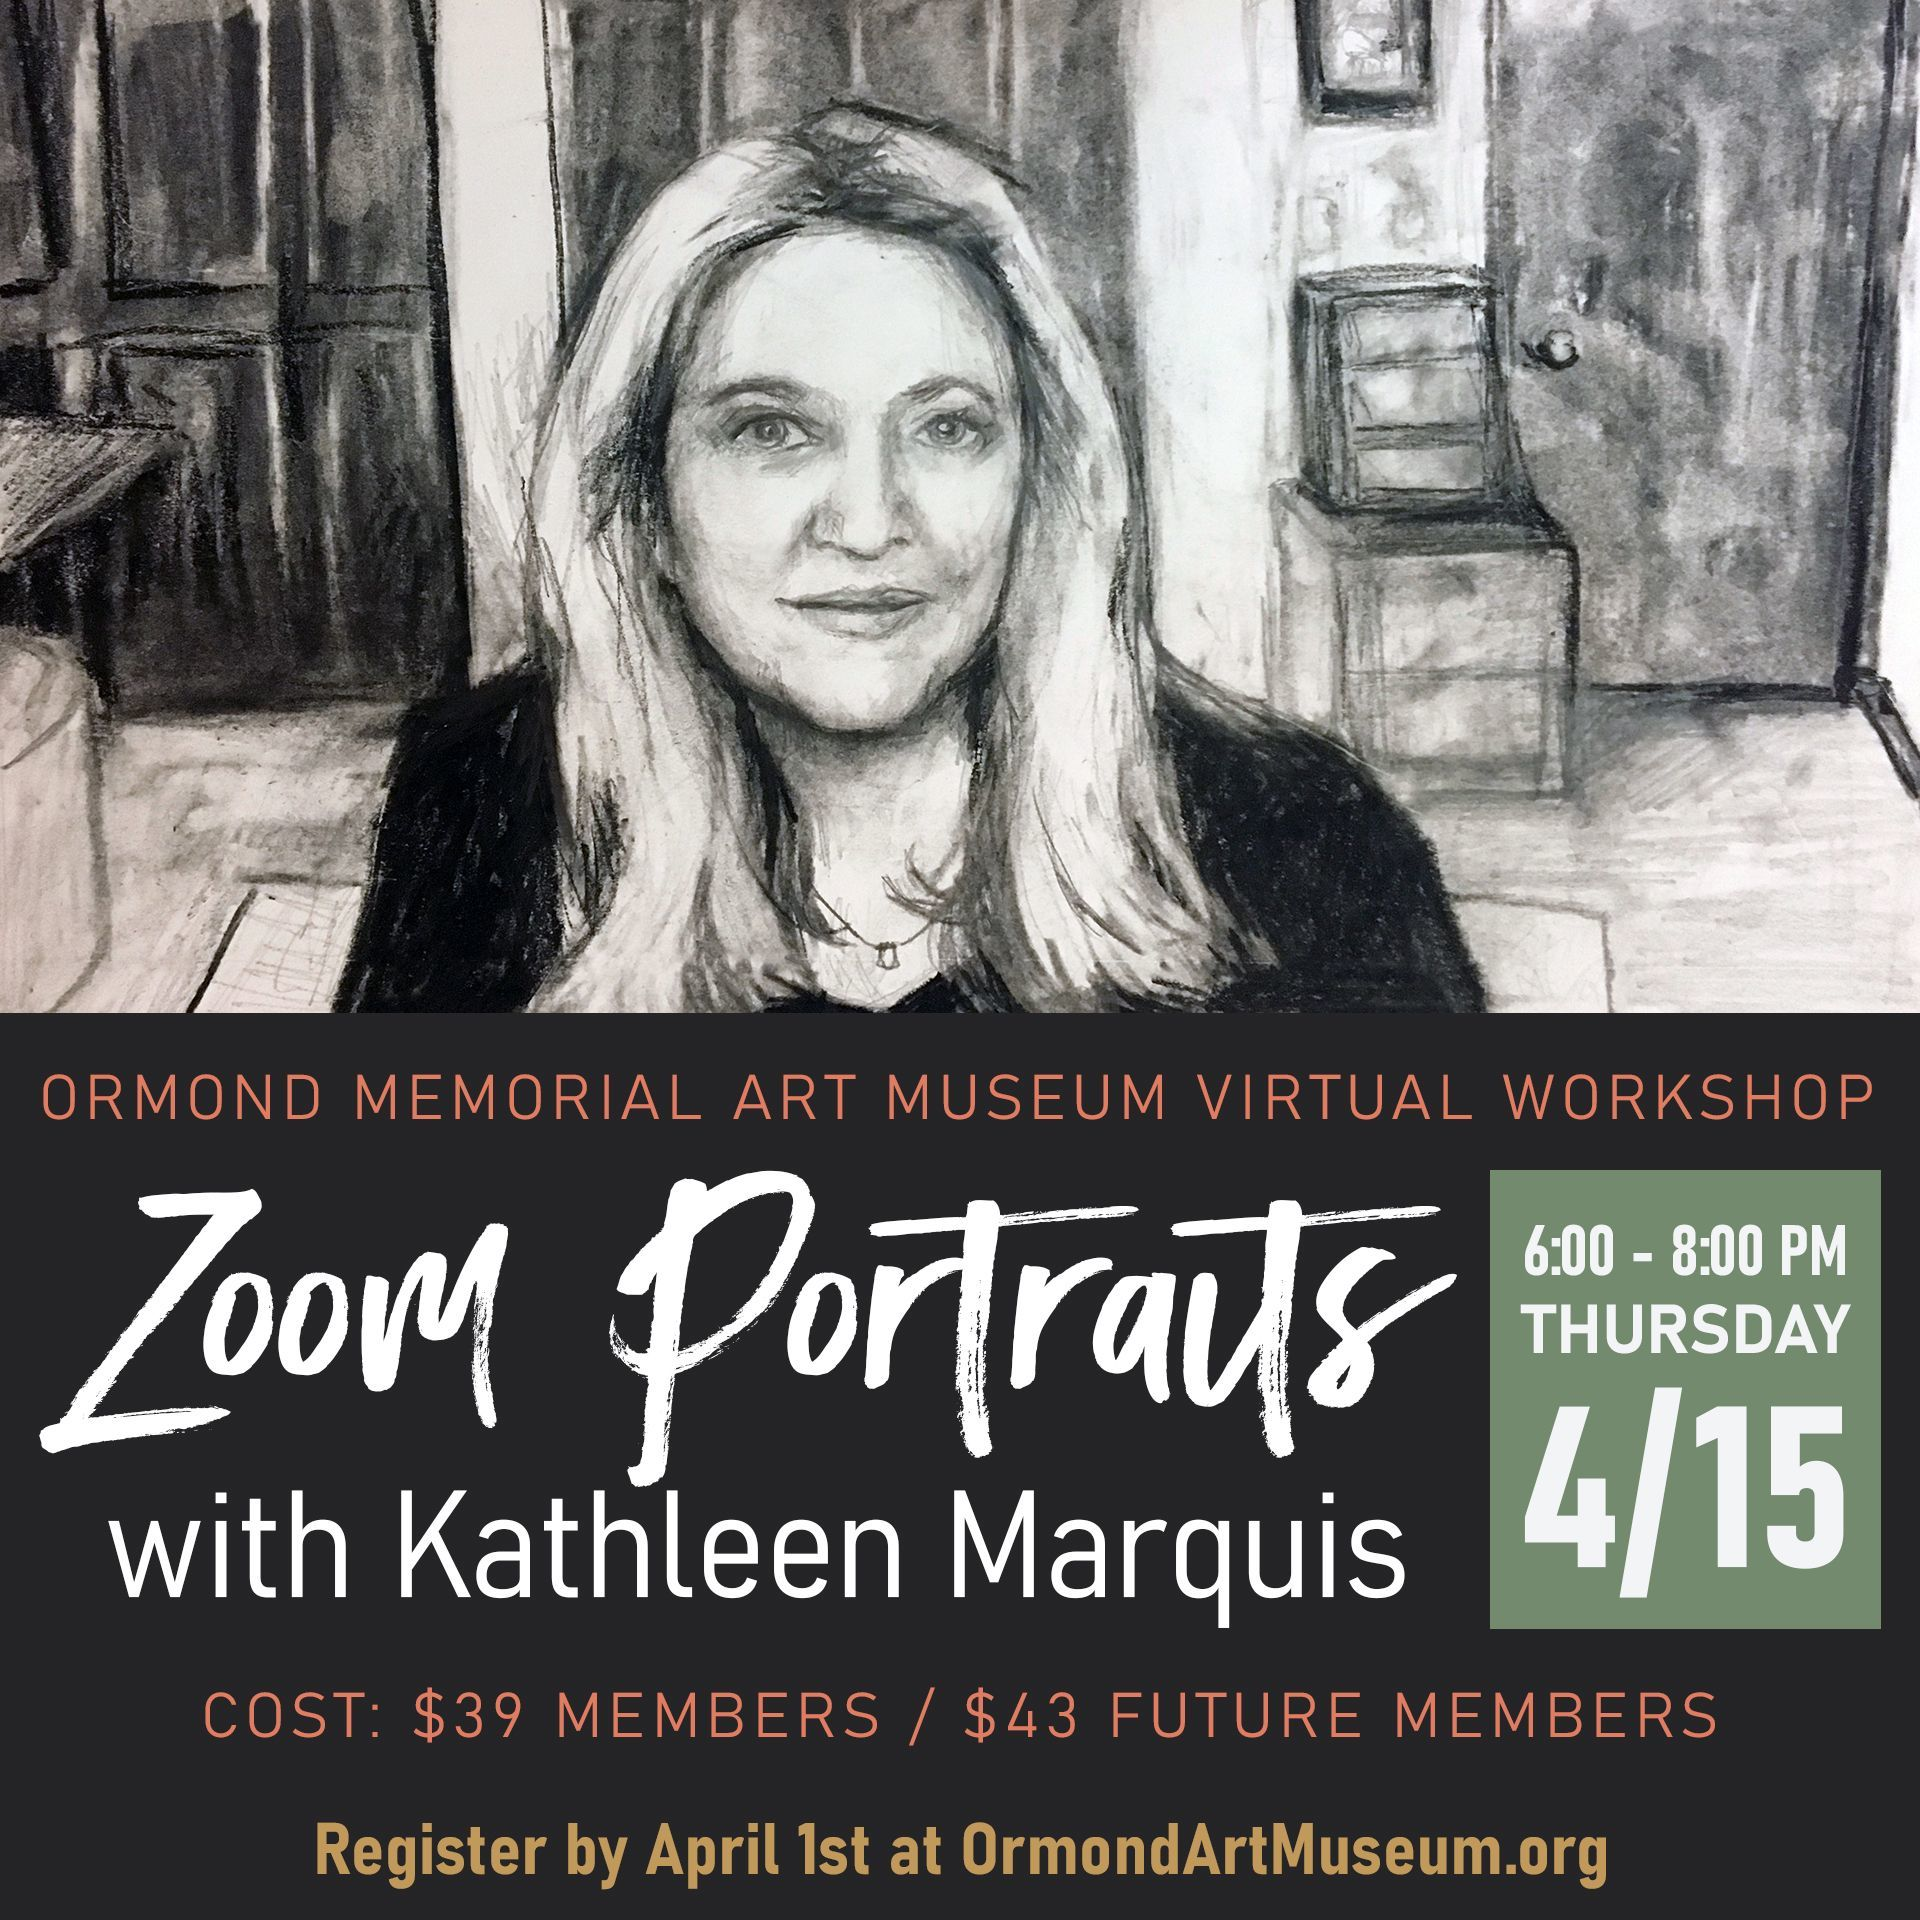 Registration Deadline for Zoom Portraits with Kathleen Marquis